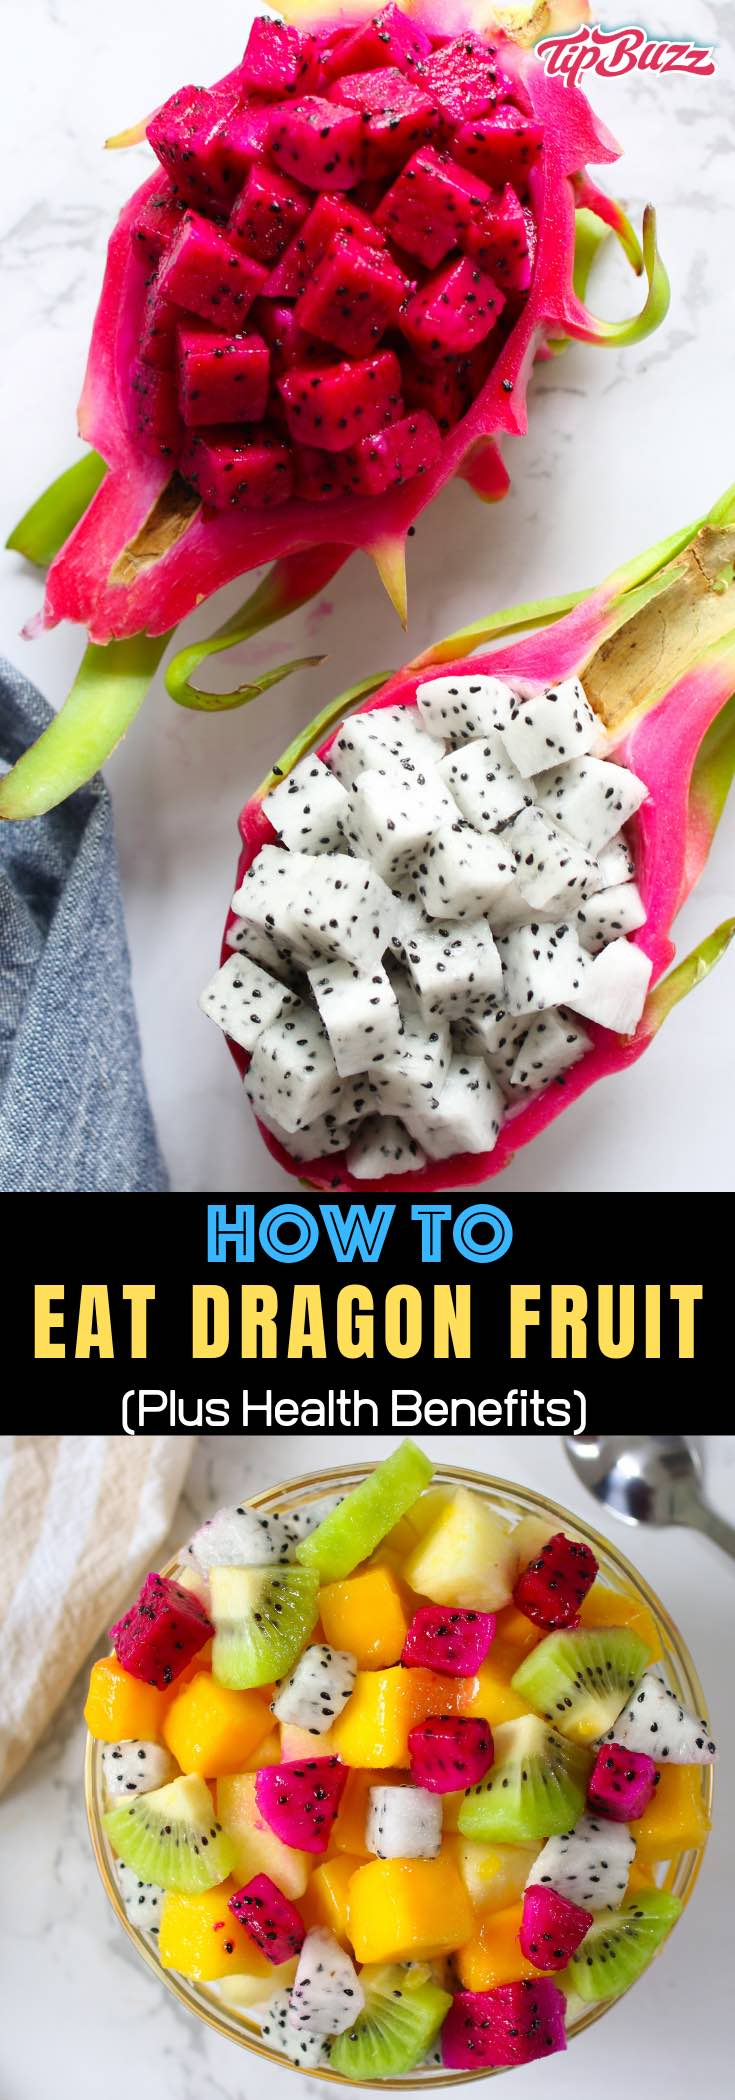 Learn how to cut dragon fruit quickly and easily with this step-by-step guide. The sweet flesh is delicious and packed full of nutrients. You can eat dragon fruit on its own as a simple and refreshing snack or add it to fruit salads, smoothies, desserts and more!